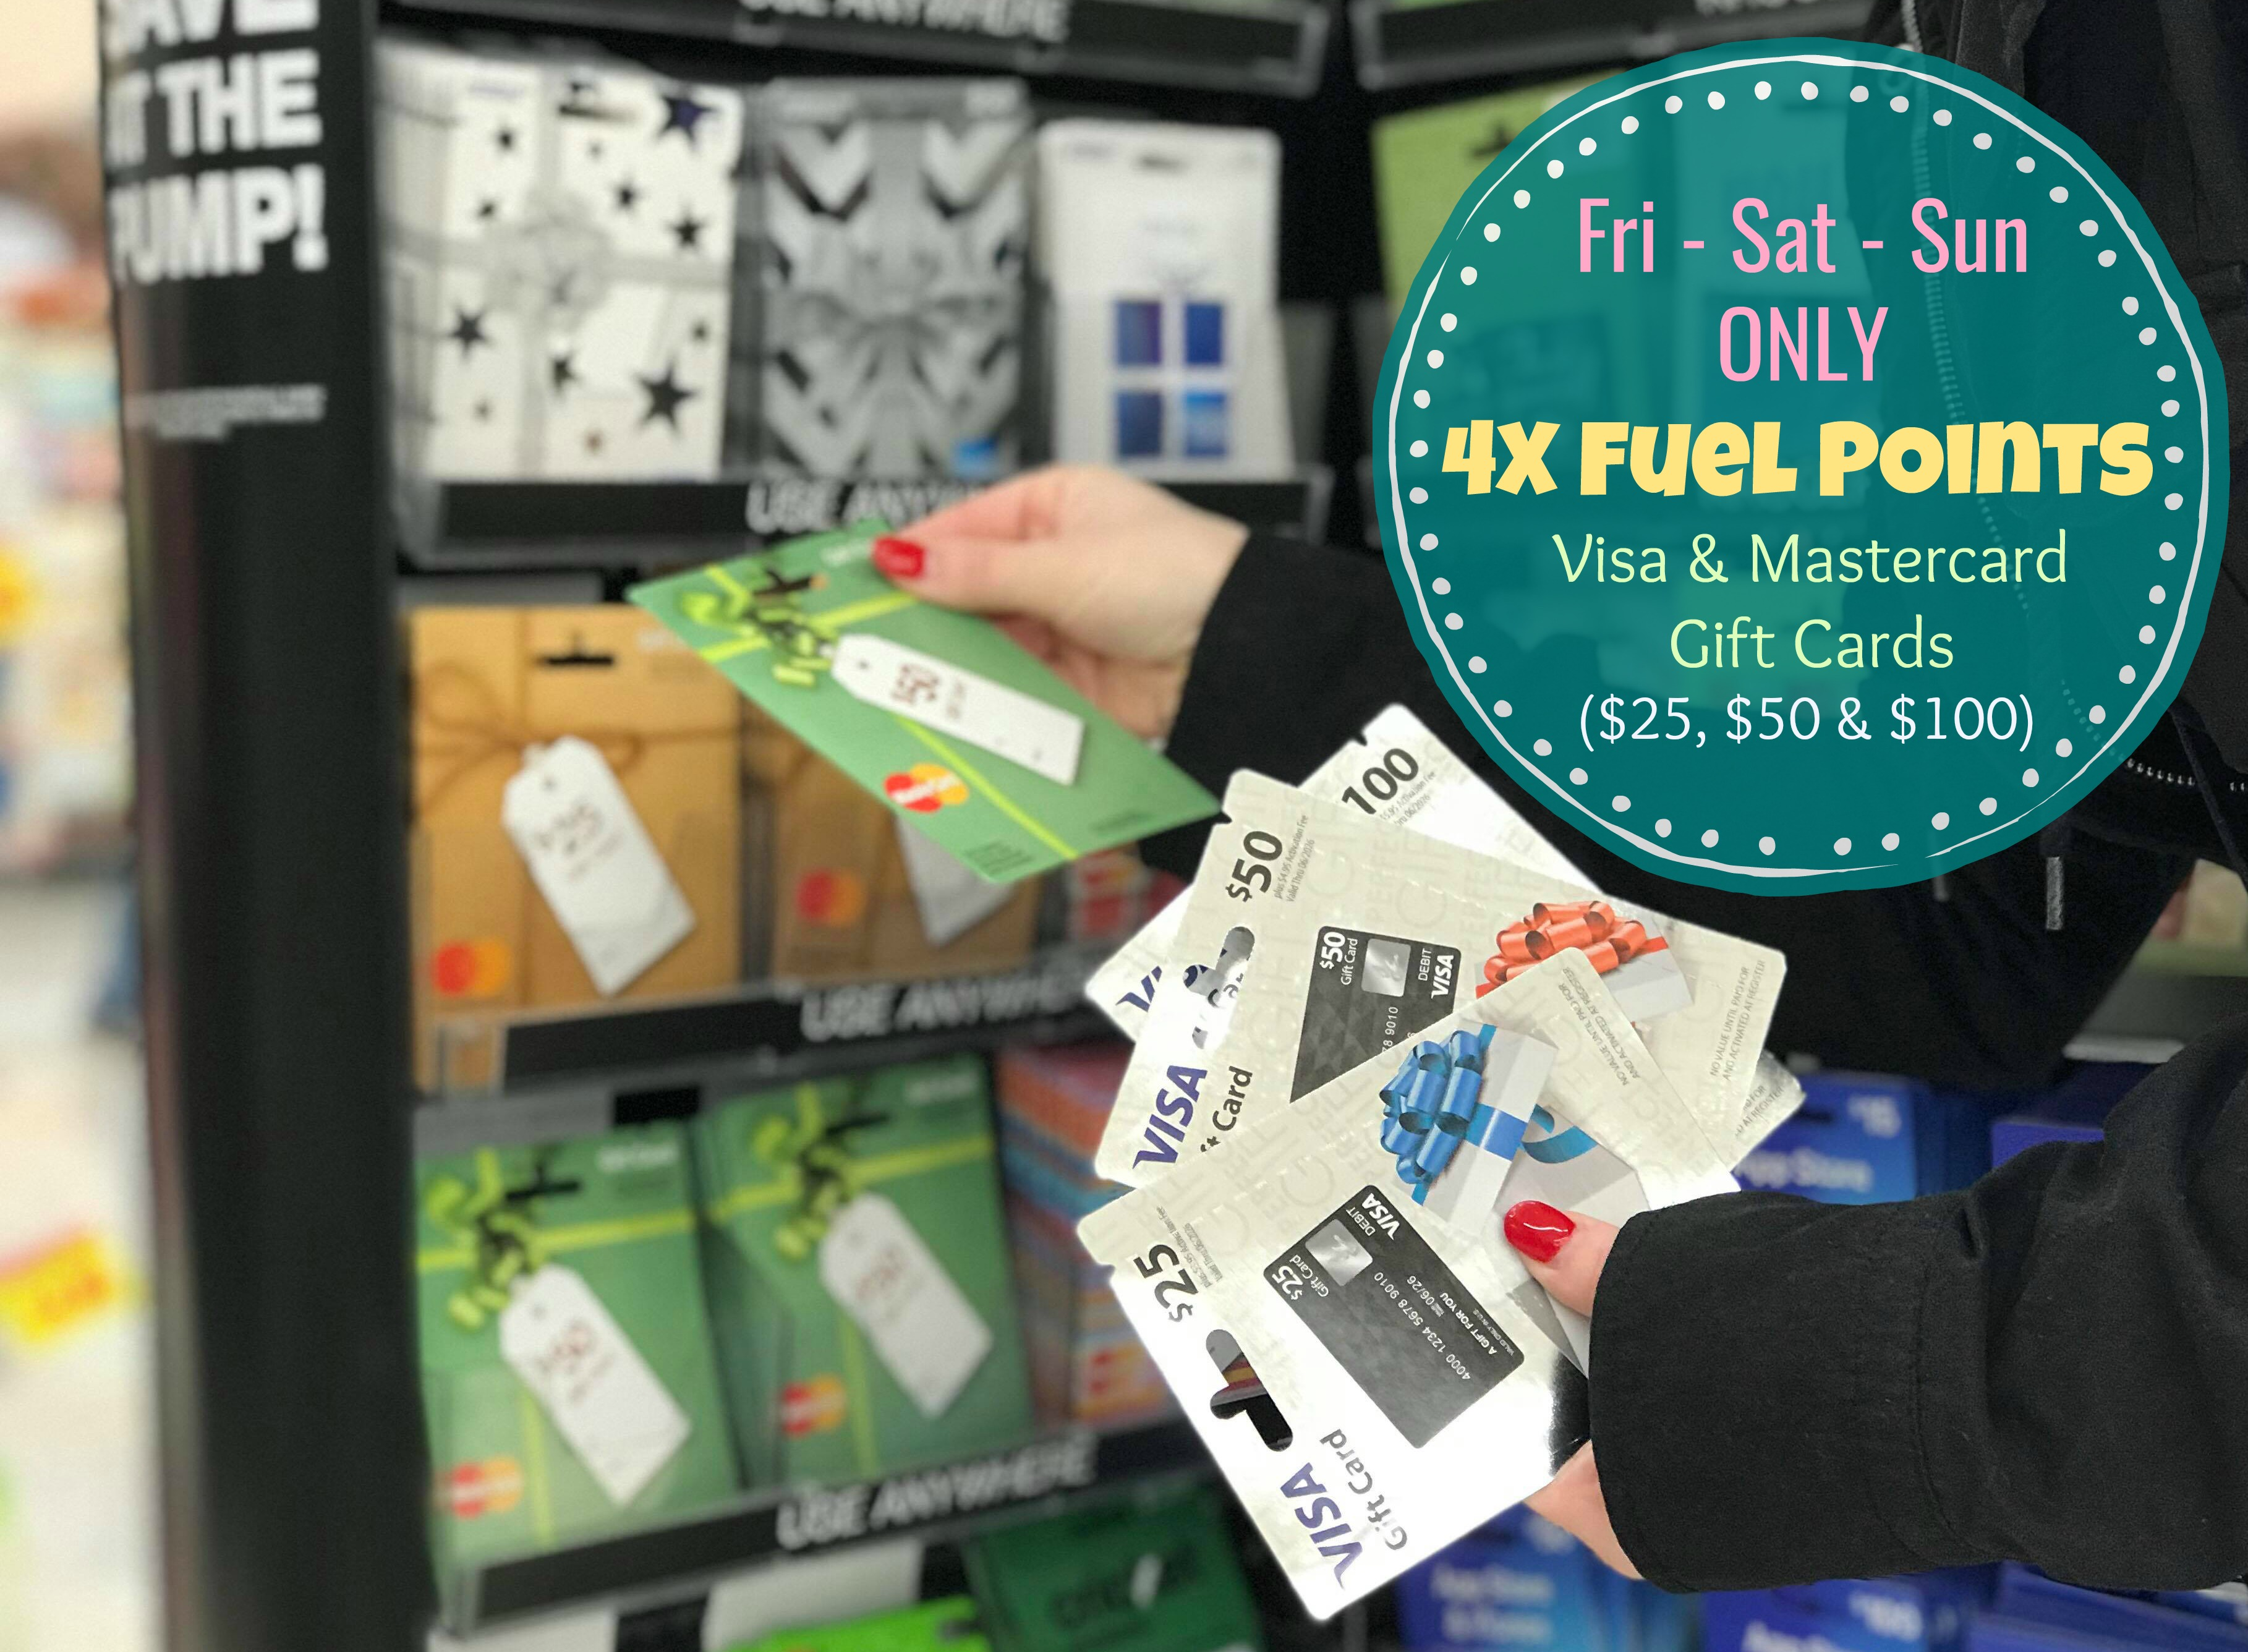 From Friday February 16 Thru Sunday 18 You Can Earn 4x Fuel Points On Visa And Mastercard 25 50 Or 100 Gift Cards At Kroger